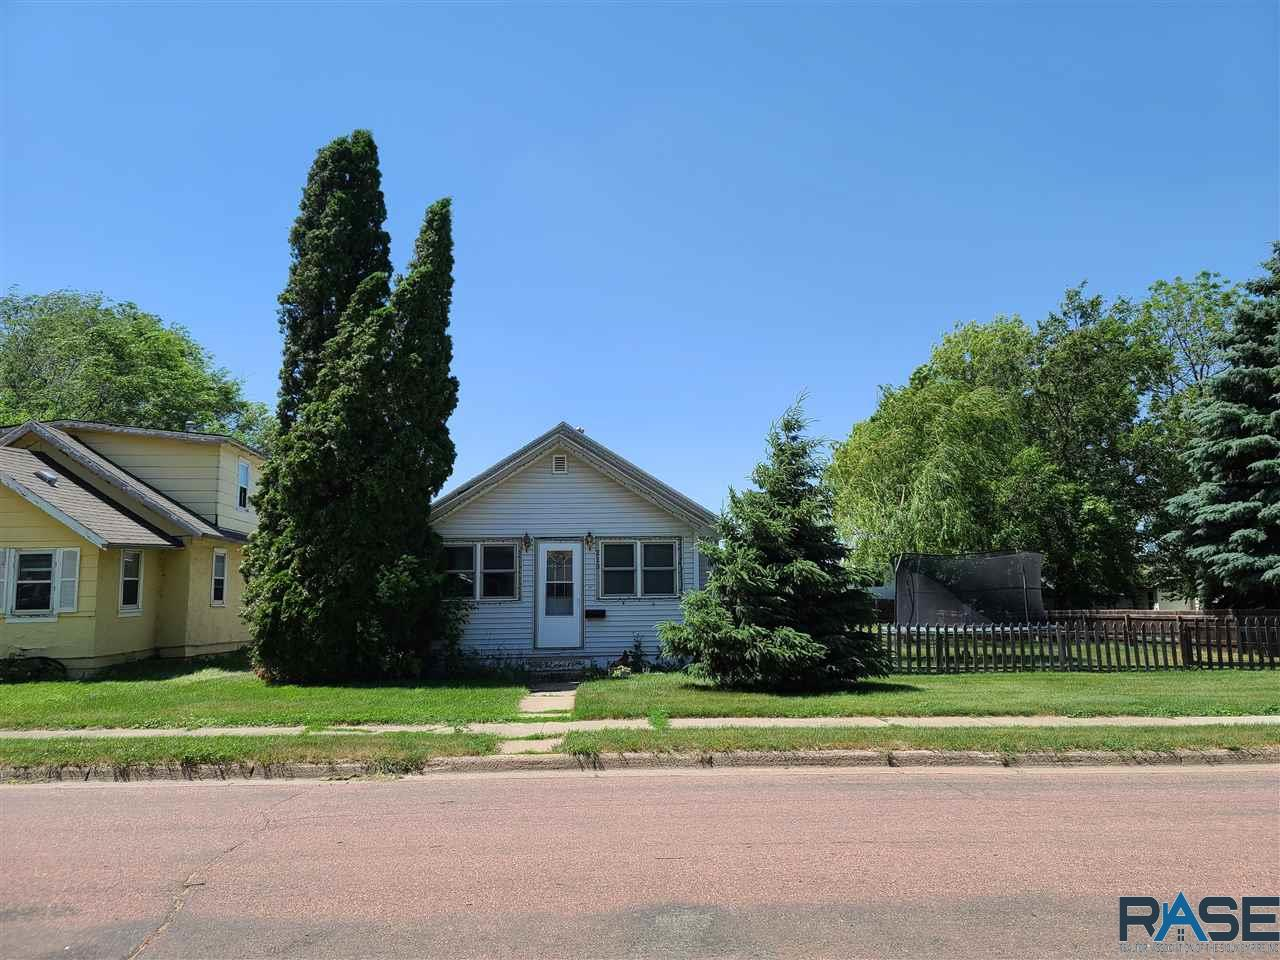 213 S Lee Ave SD 57042